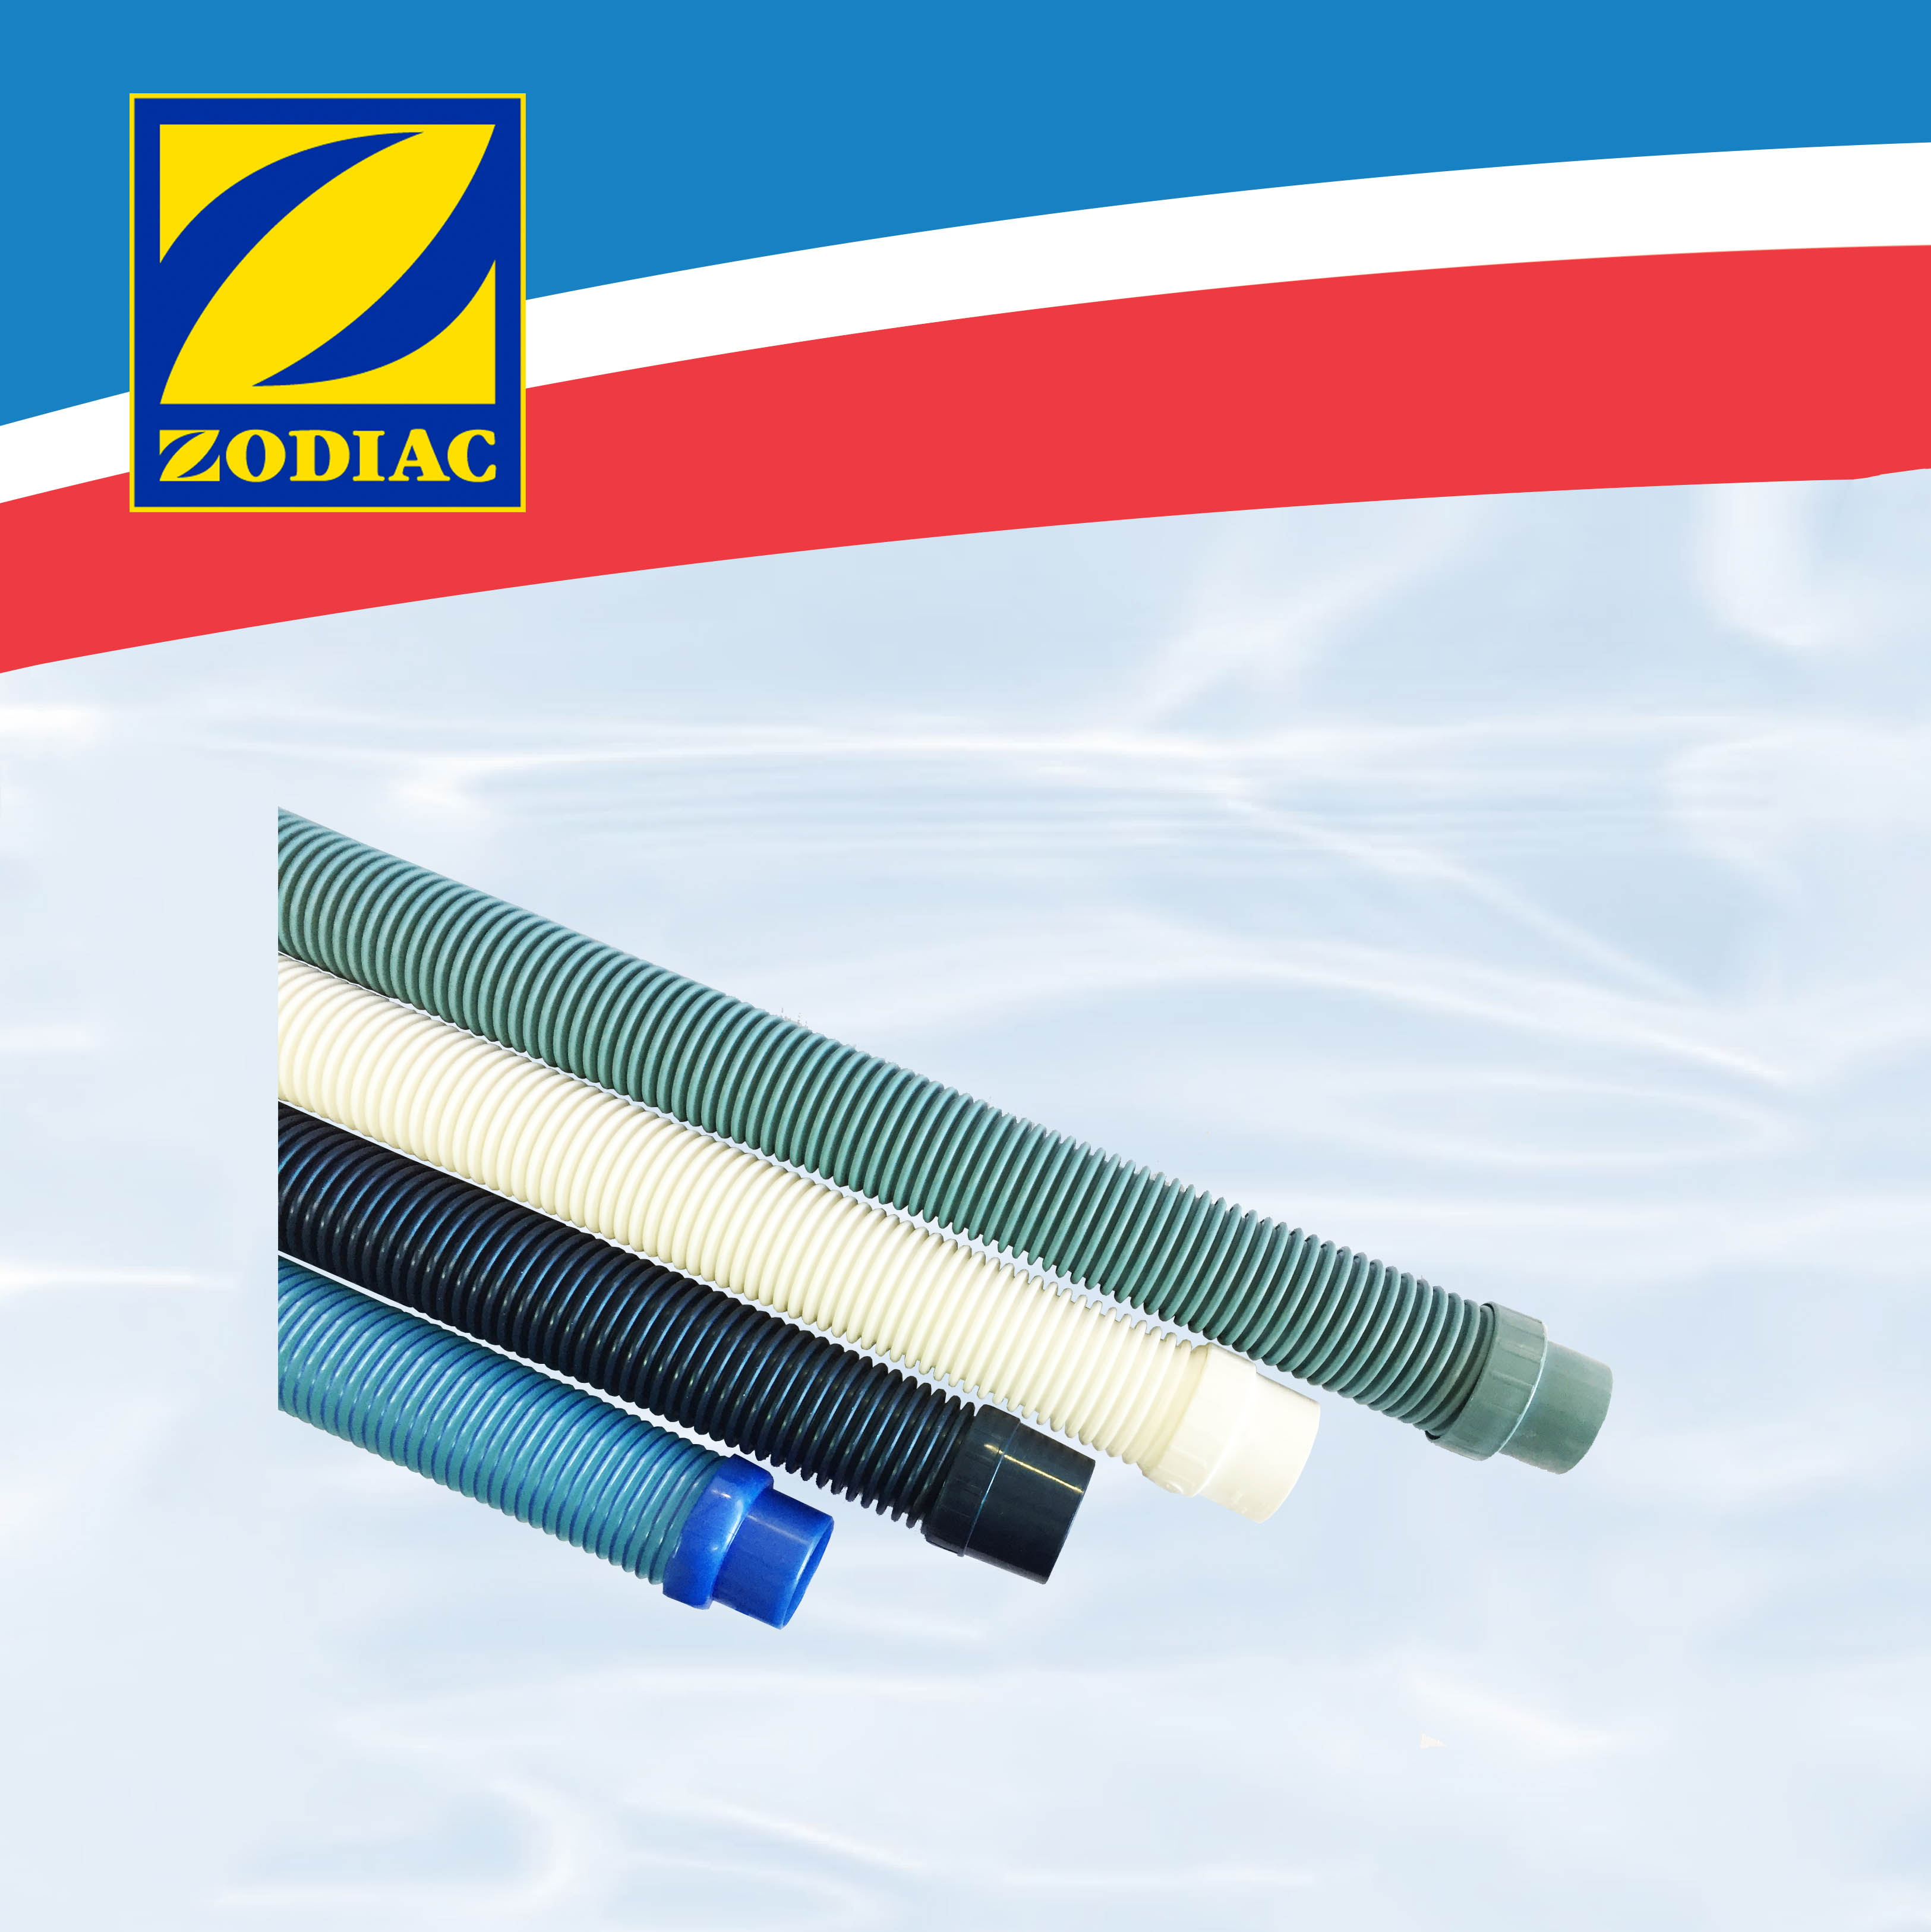 Zodiac Pool Cleaner Hose 1 2m Standard Hyper Pool Group